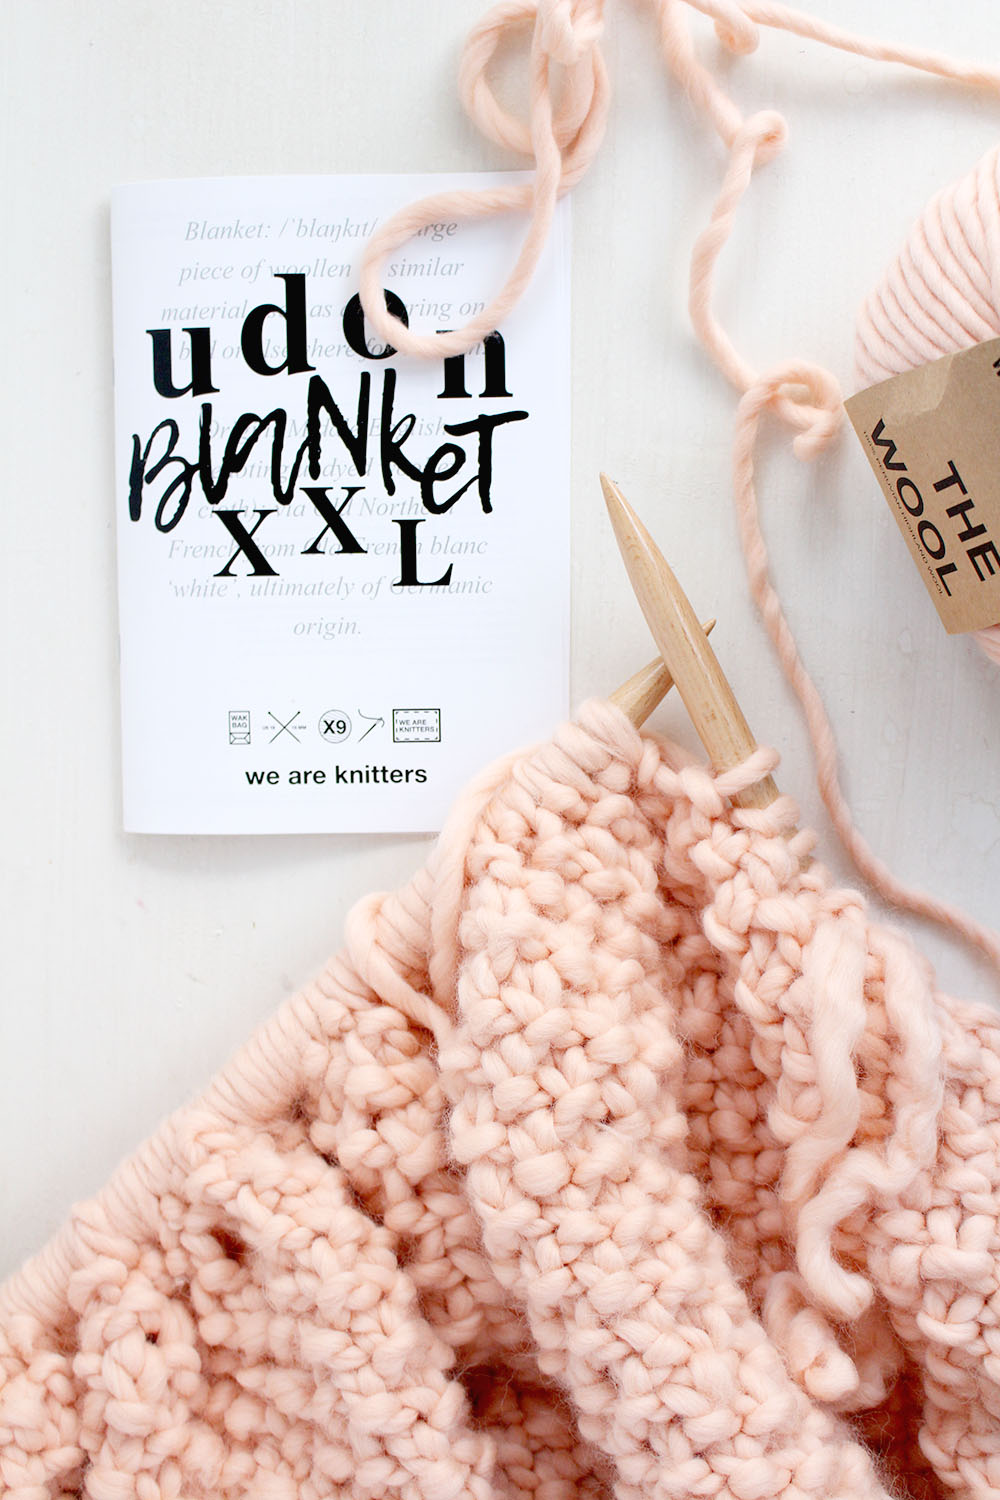 diy udon xxl blanket we are knitters gewinnspiel provinzkindchen. Black Bedroom Furniture Sets. Home Design Ideas